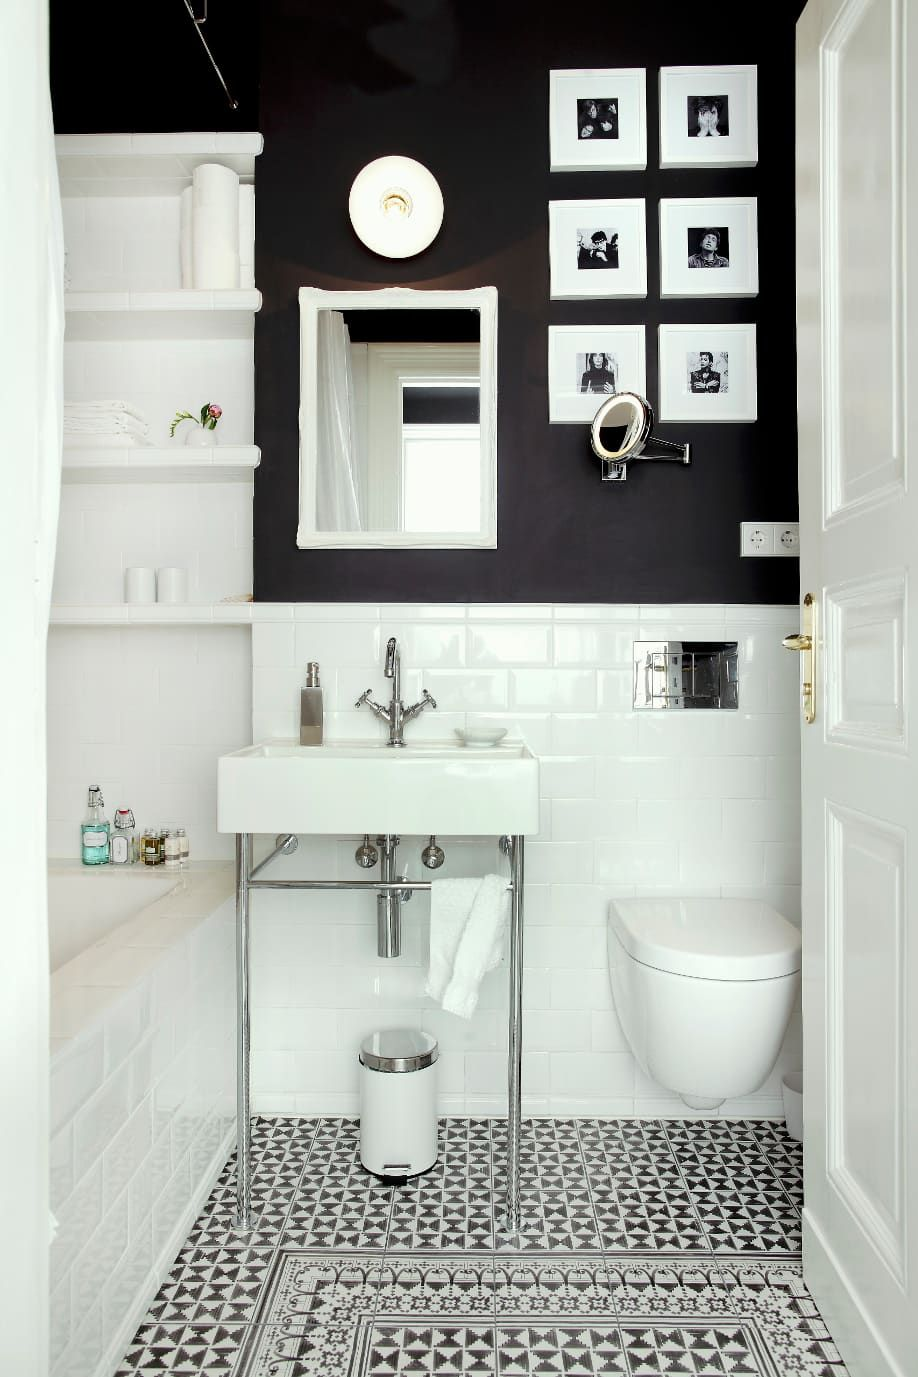 tipps f r kleine badezimmer hier im westwing magazin bathroom pinterest badezimmer bad. Black Bedroom Furniture Sets. Home Design Ideas